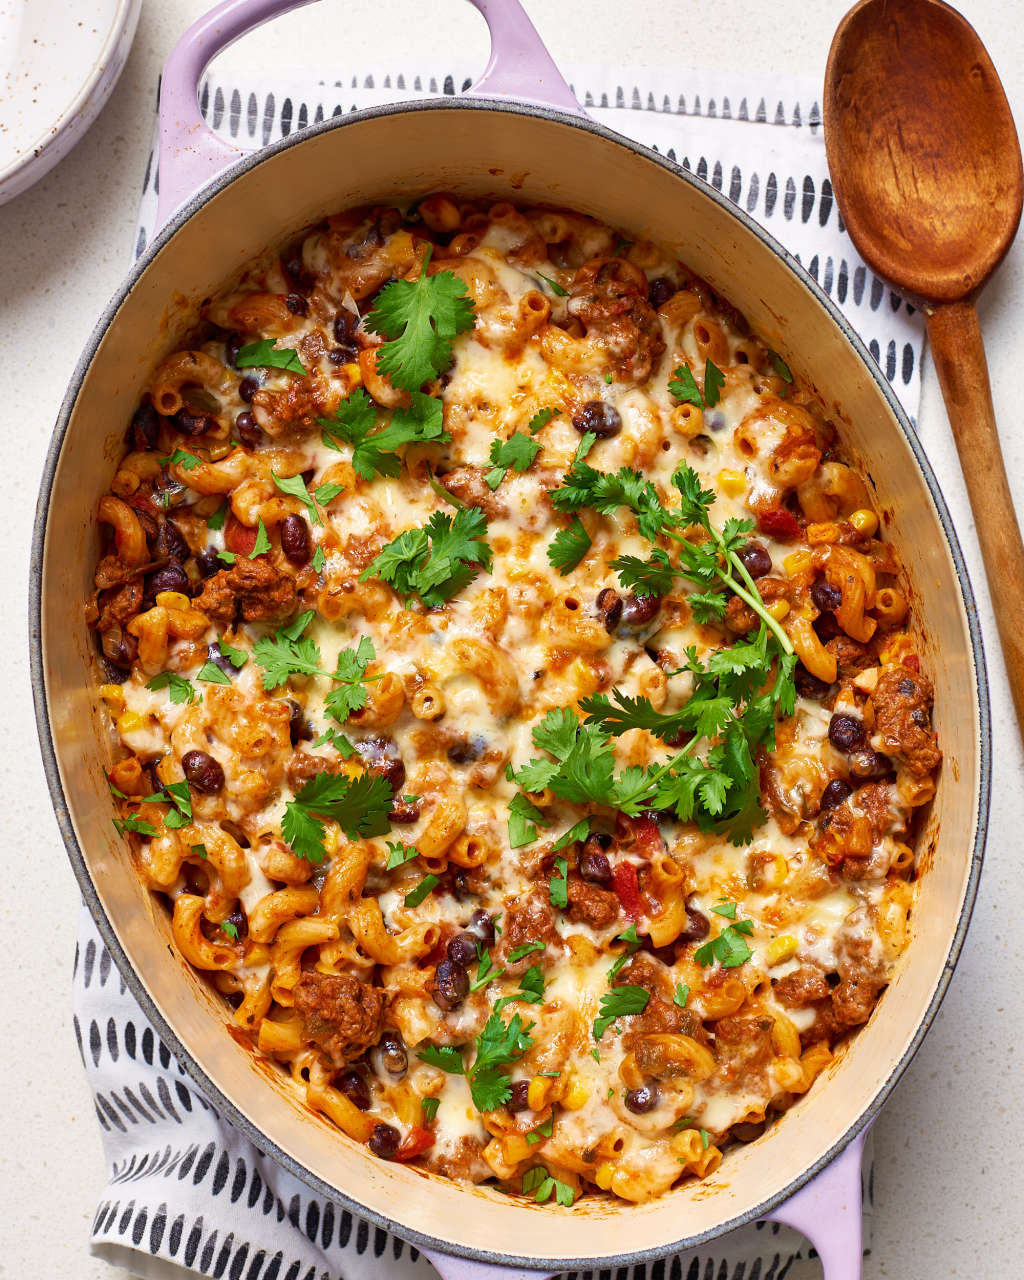 10 One-Pot Meals for When You're Not Sure What to Make